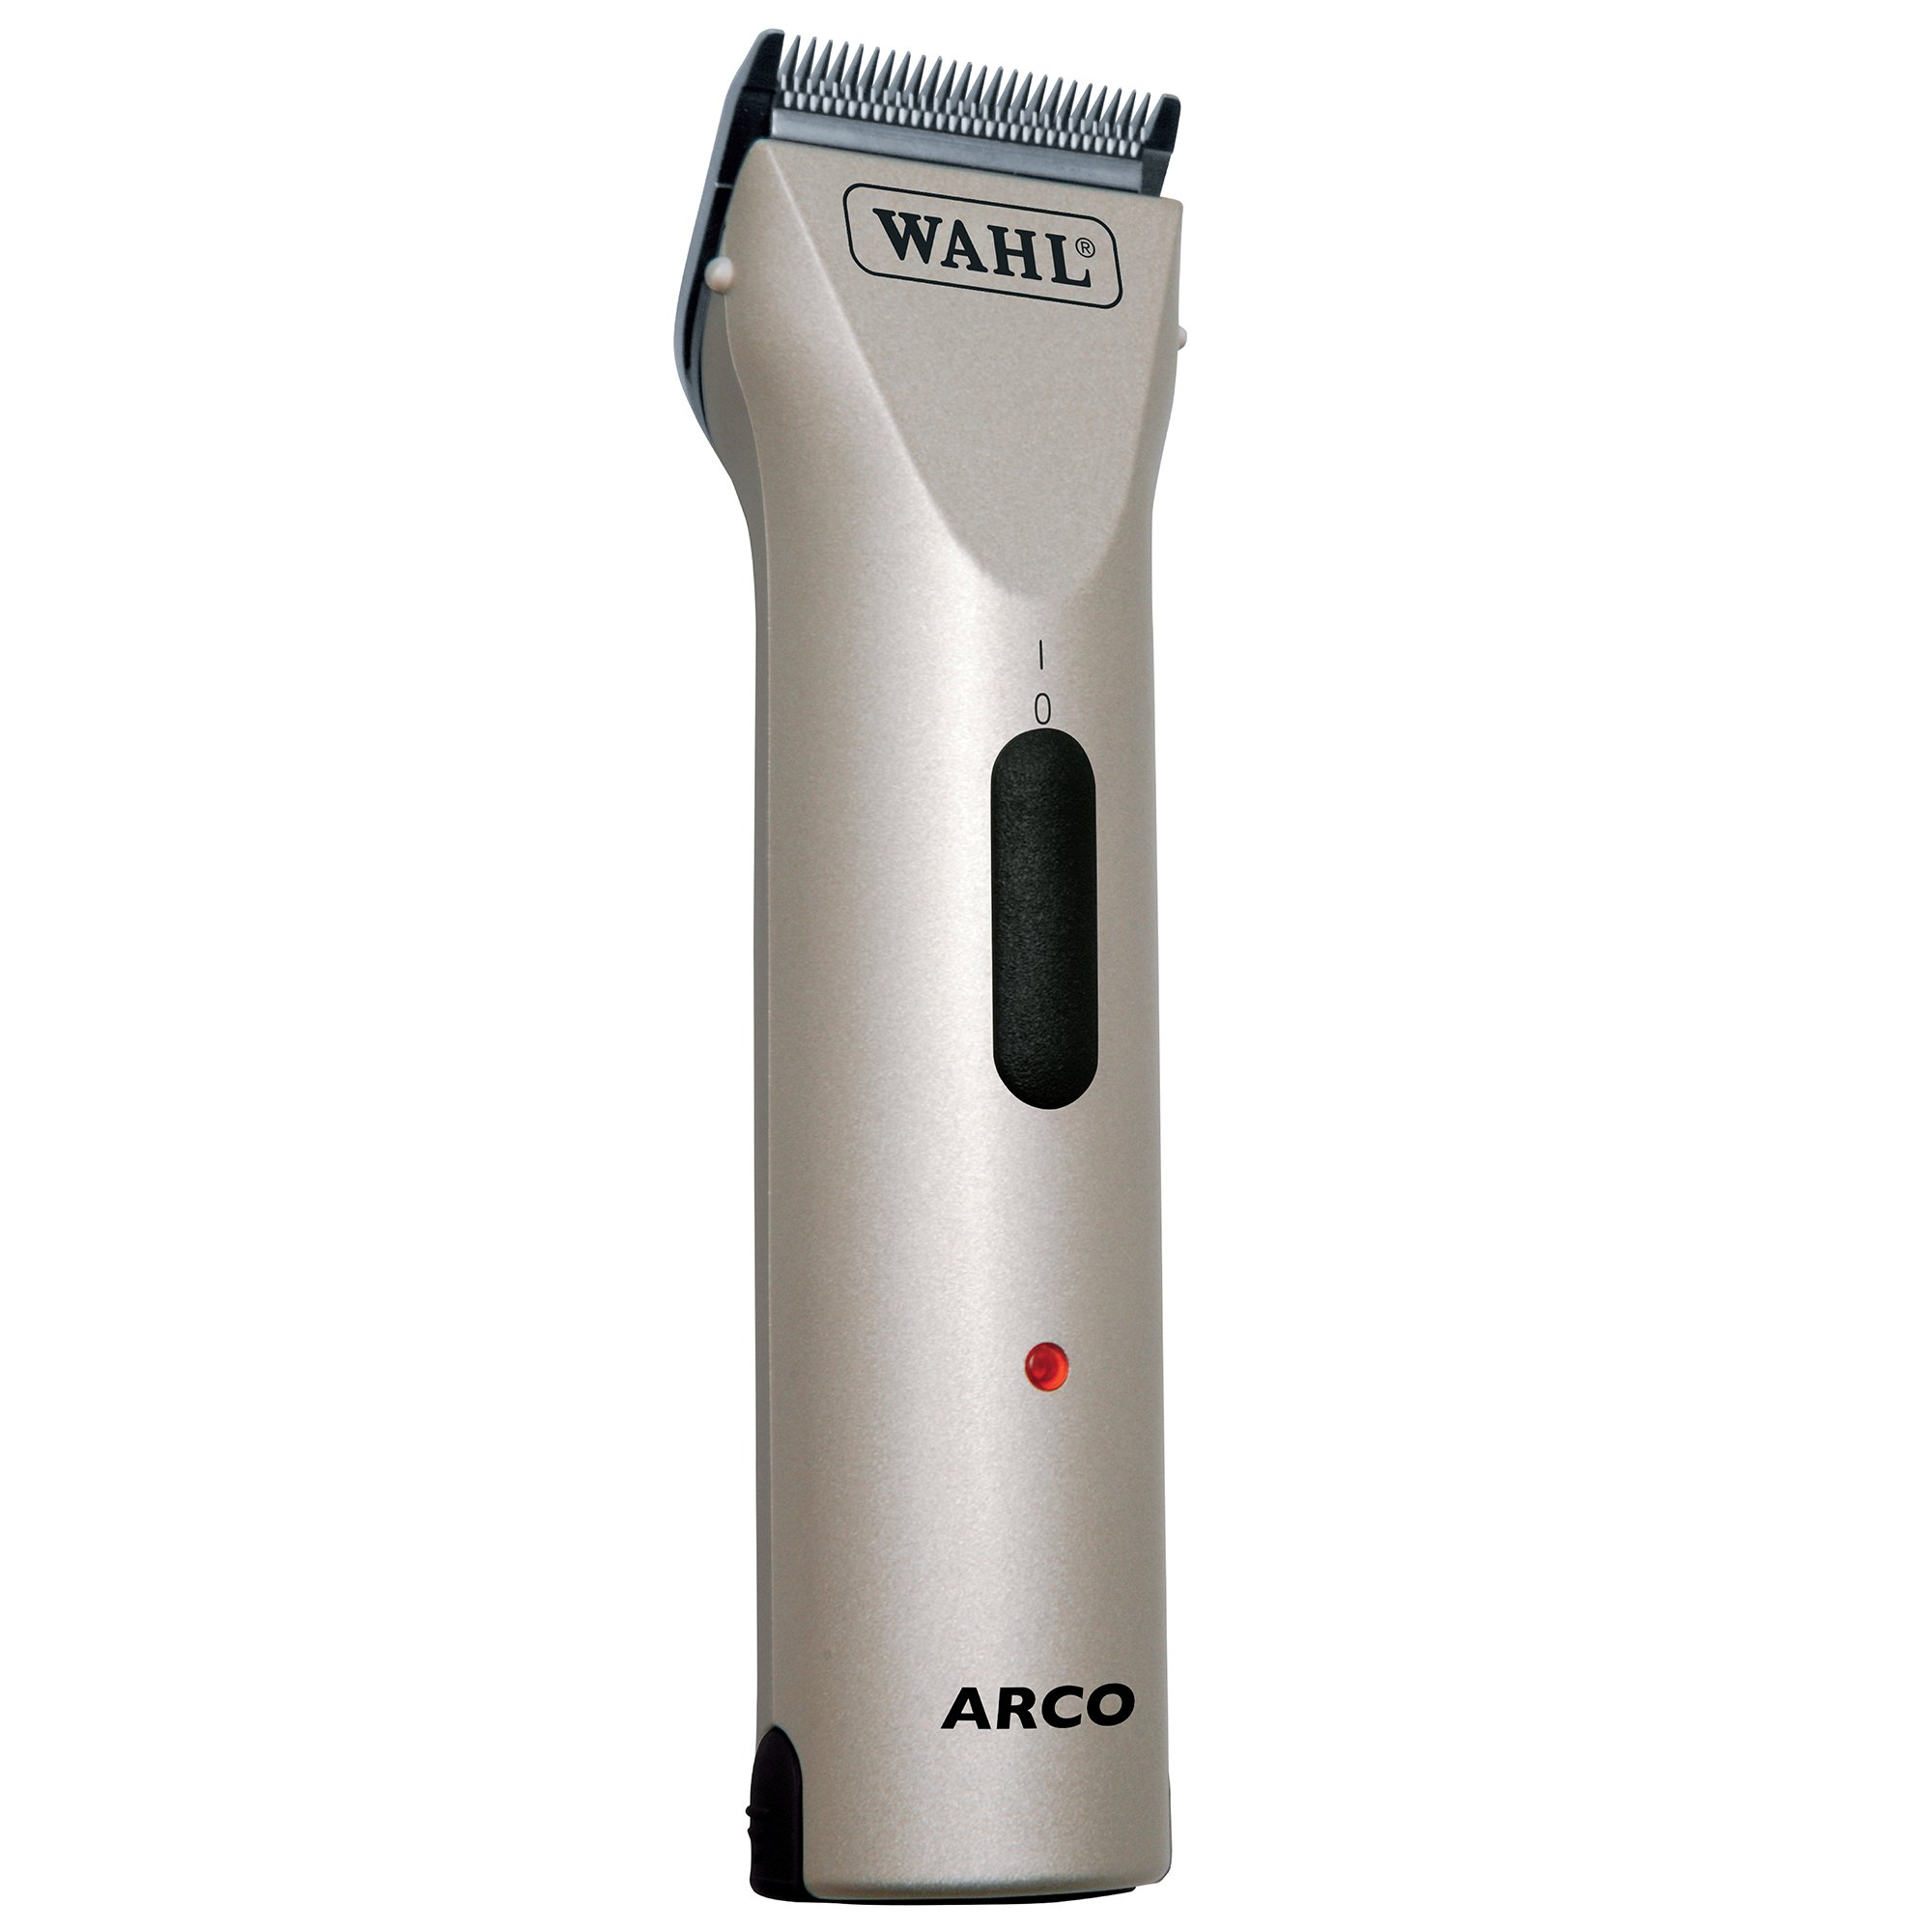 Wahl Professional Animal ARCO Cordless Pet Clipper and Grooming Kit, Champagne (#8786-452)